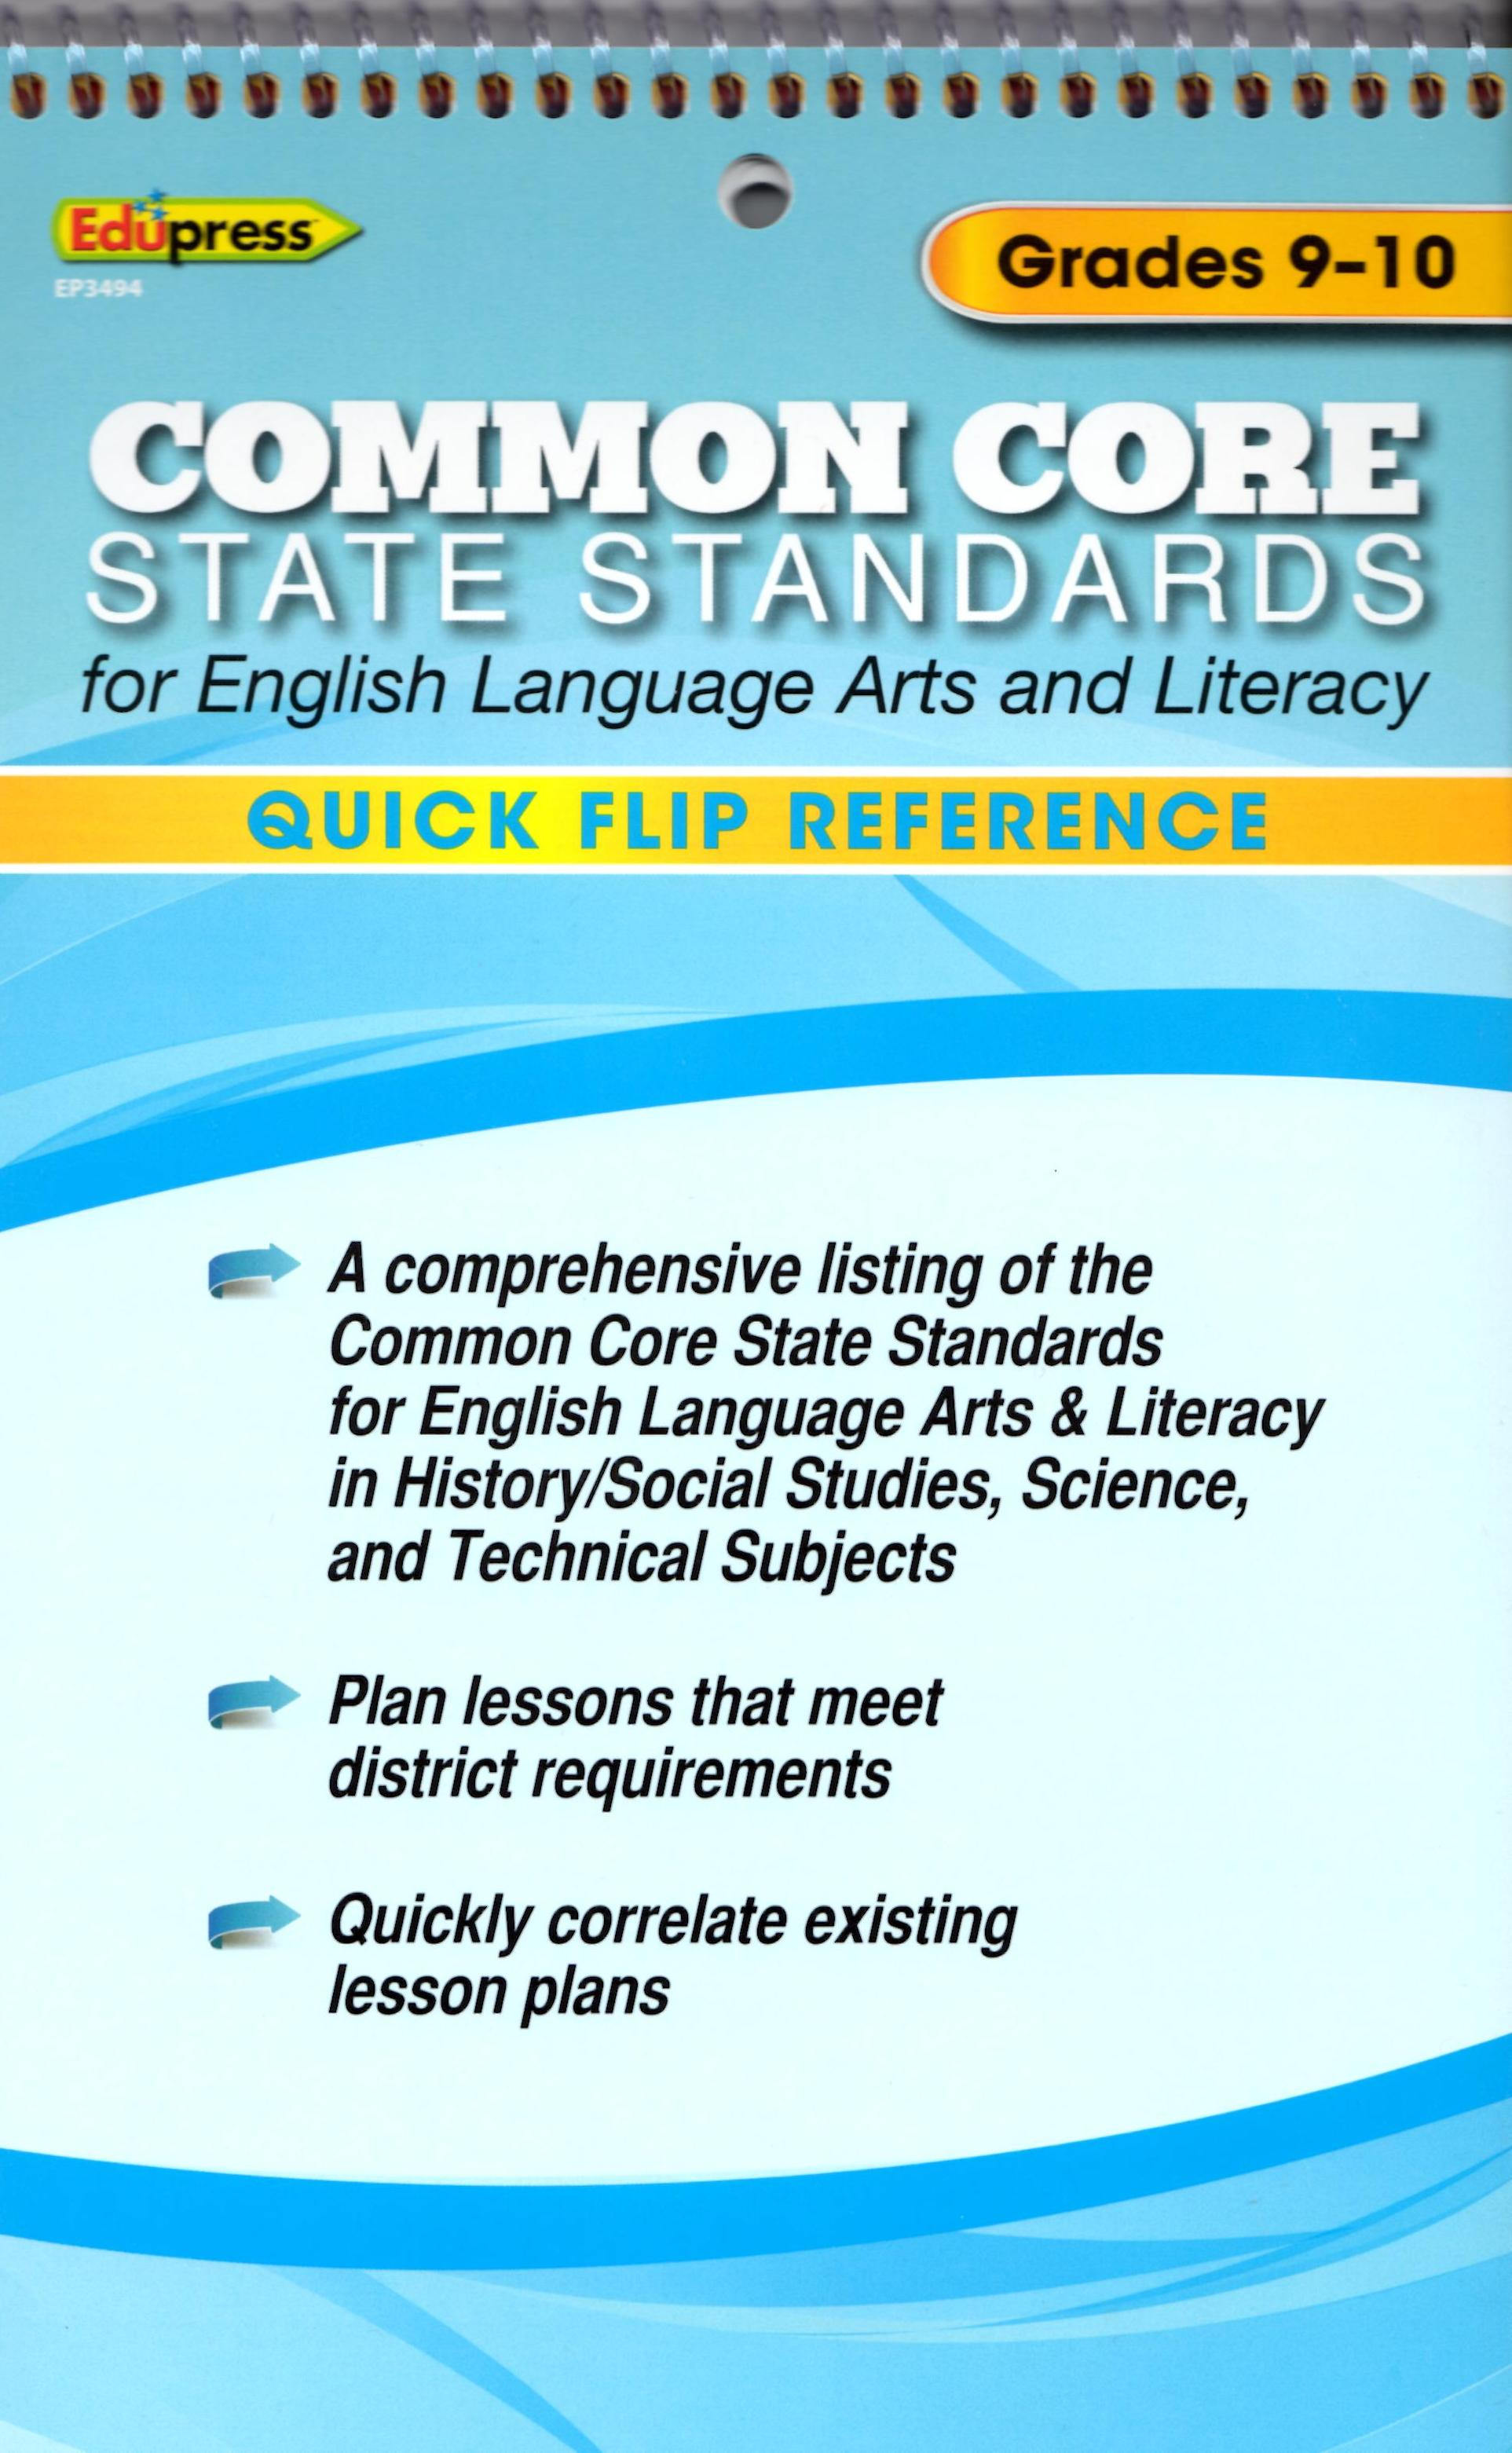 Common Core State Standards Grades 9-10 Flip Chart